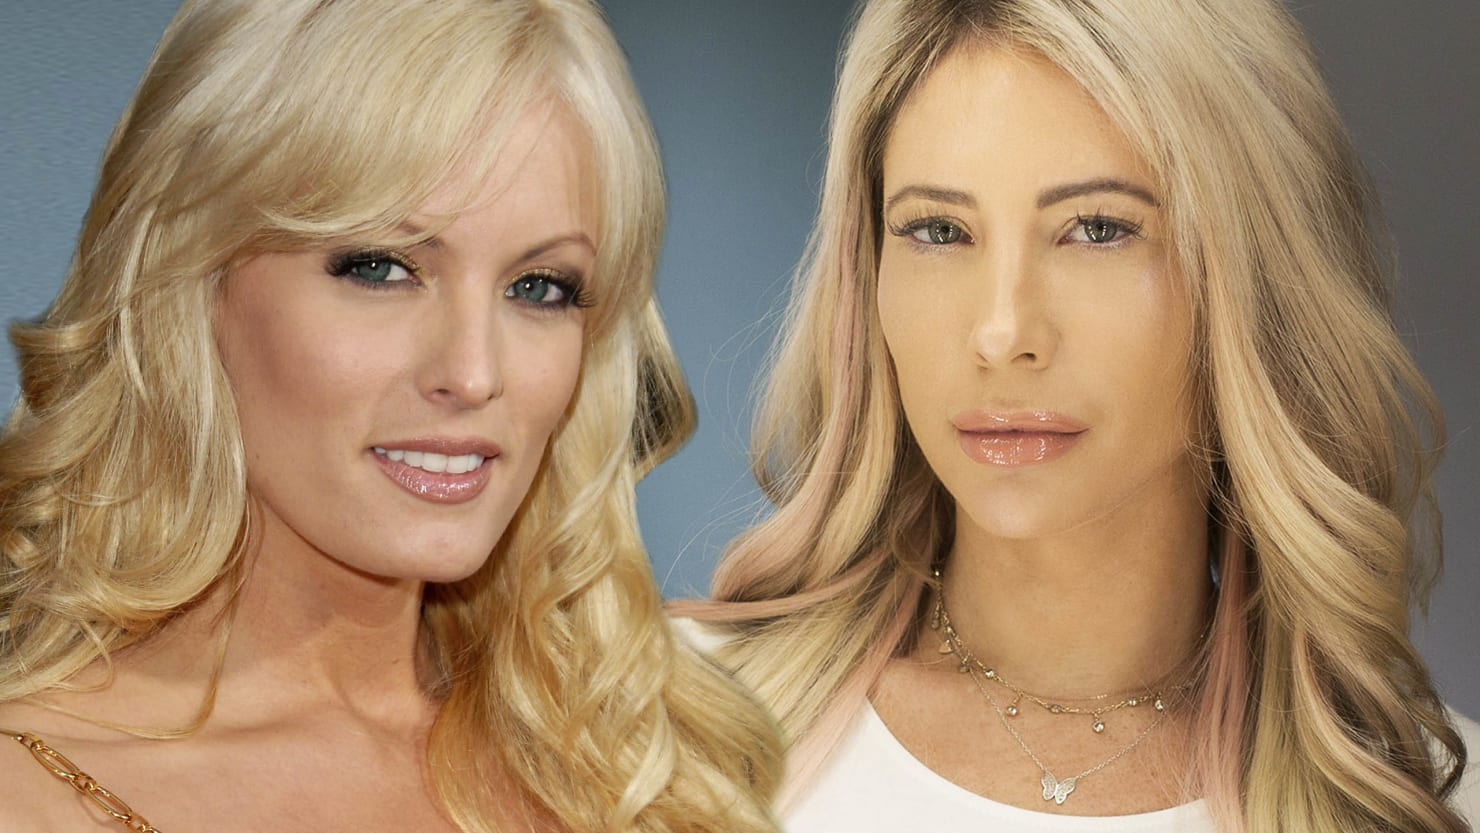 Tasha Reign I Was Assaulted On A Stormy Daniels Porn Set And She Did Nothing